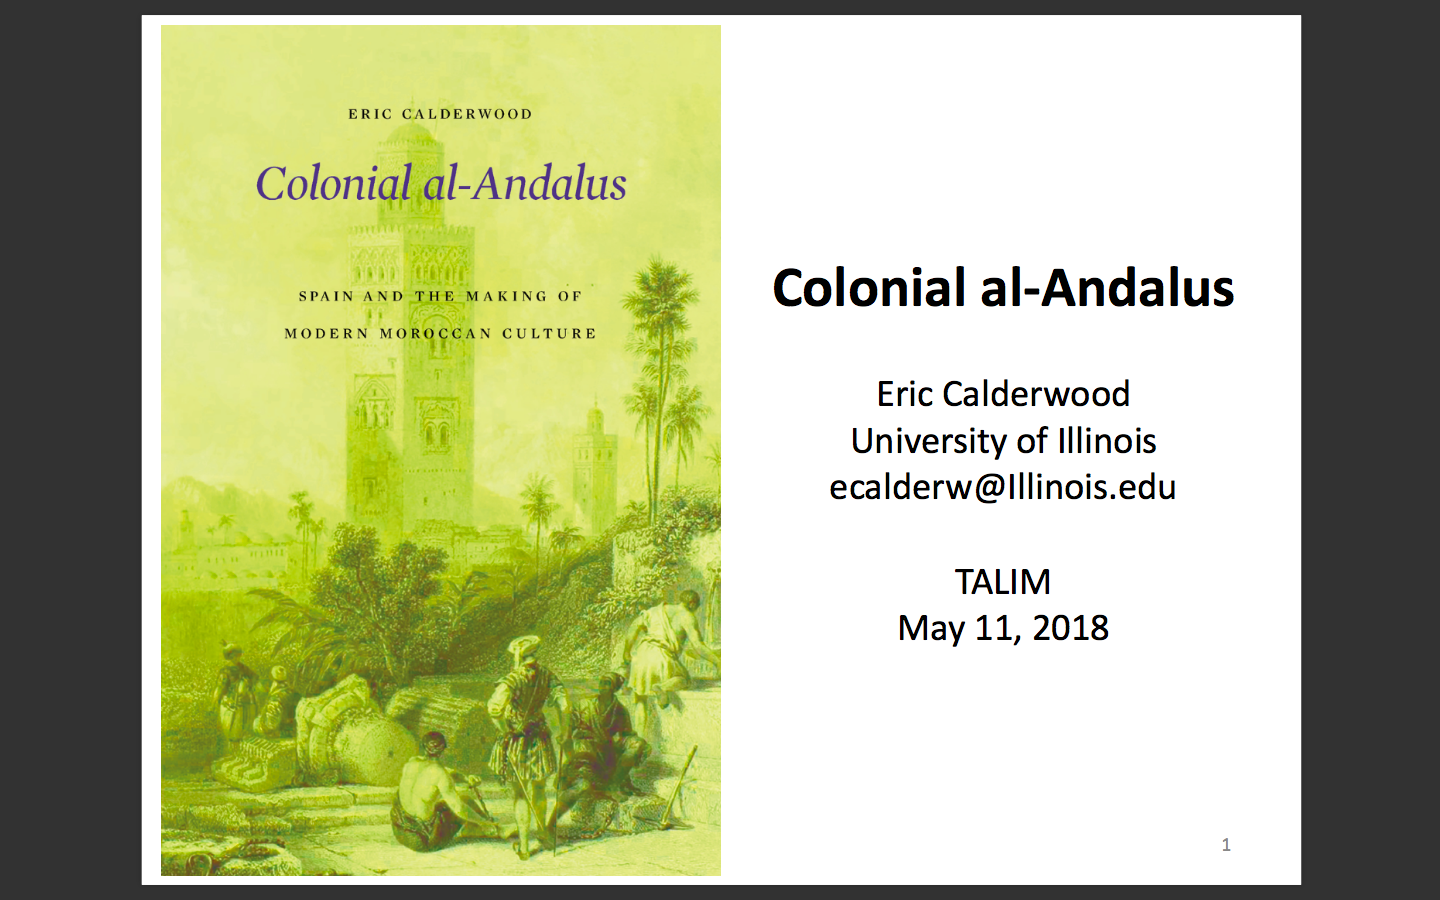 Maghrib in Past & Present | Podcasts: Colonial Andalus